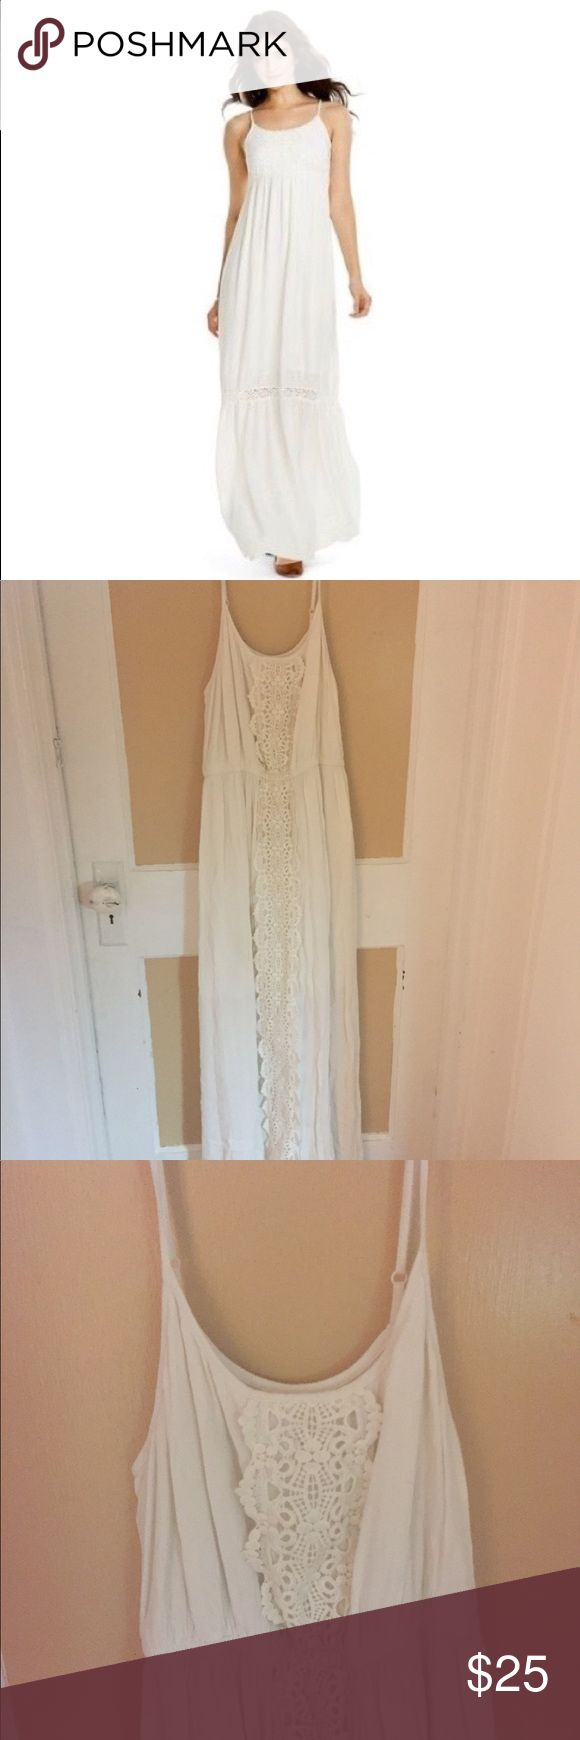 NWOT Boho Cream Dress New without tags.        Reasonable offers welcome. 🖤 Mossimo Supply Co. Dresses Maxi